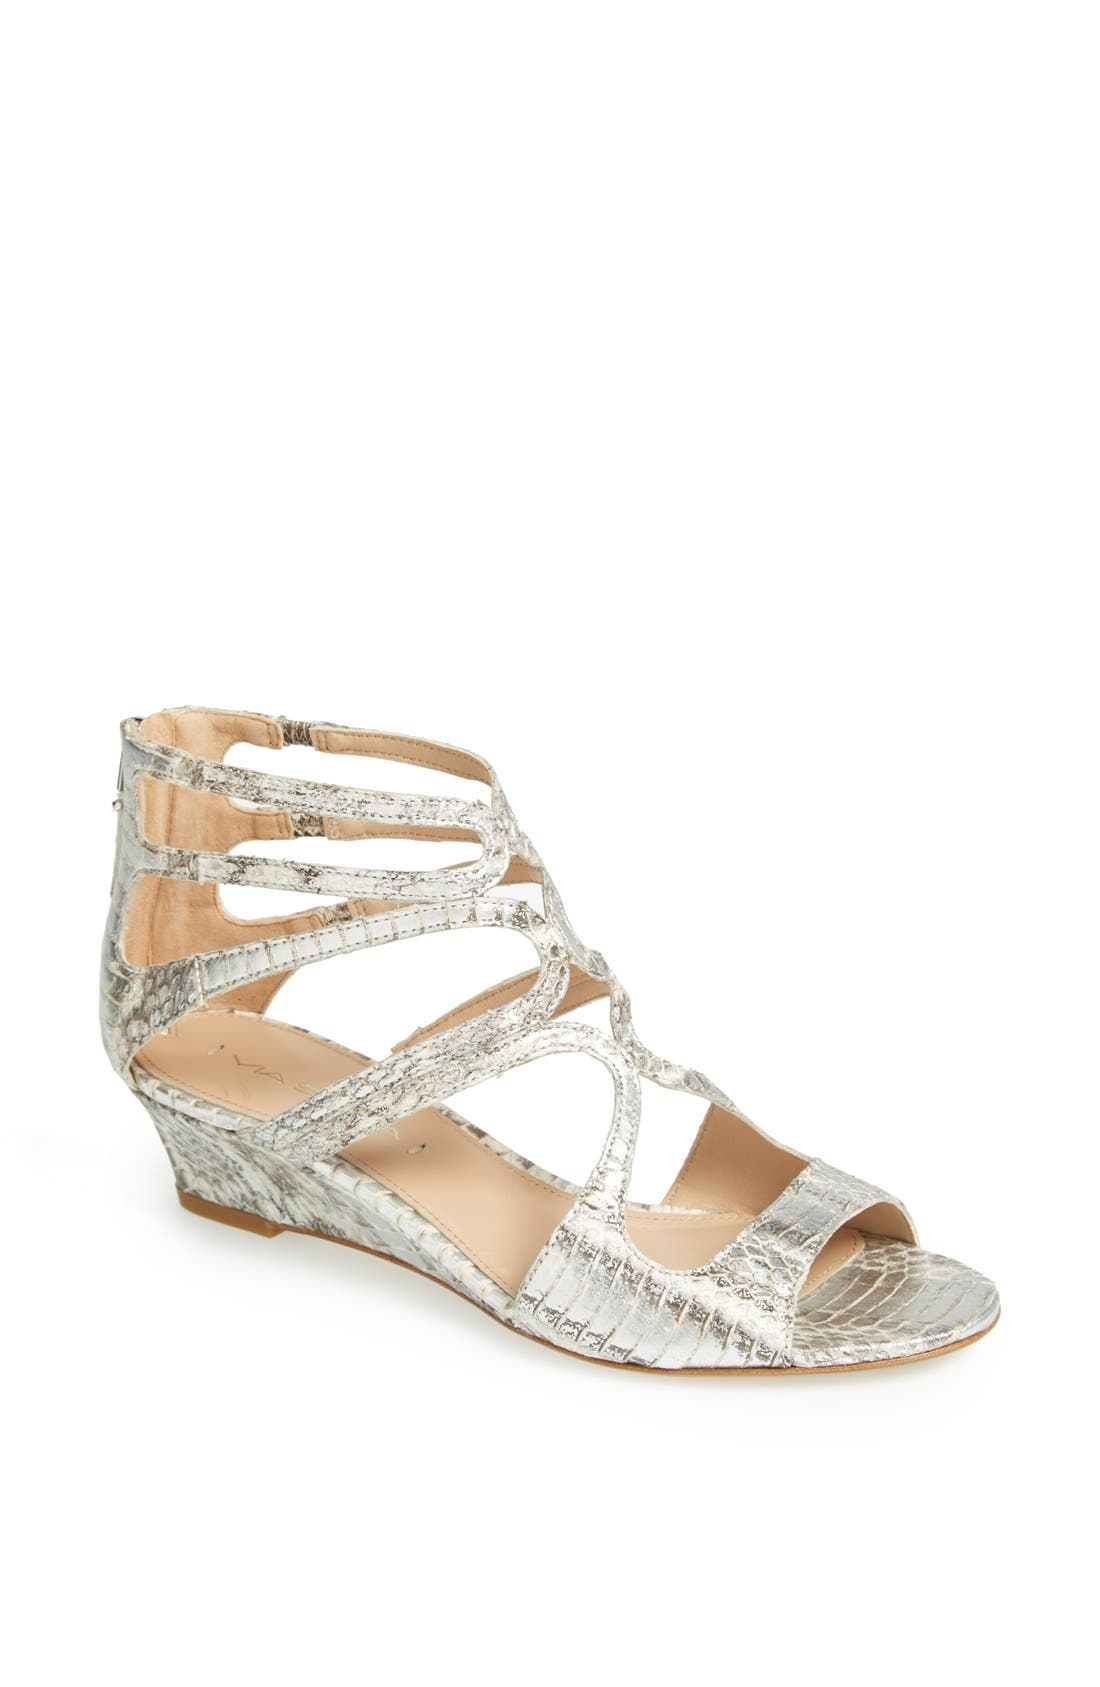 Main Image - Via Spiga 'Tamia' Wedge